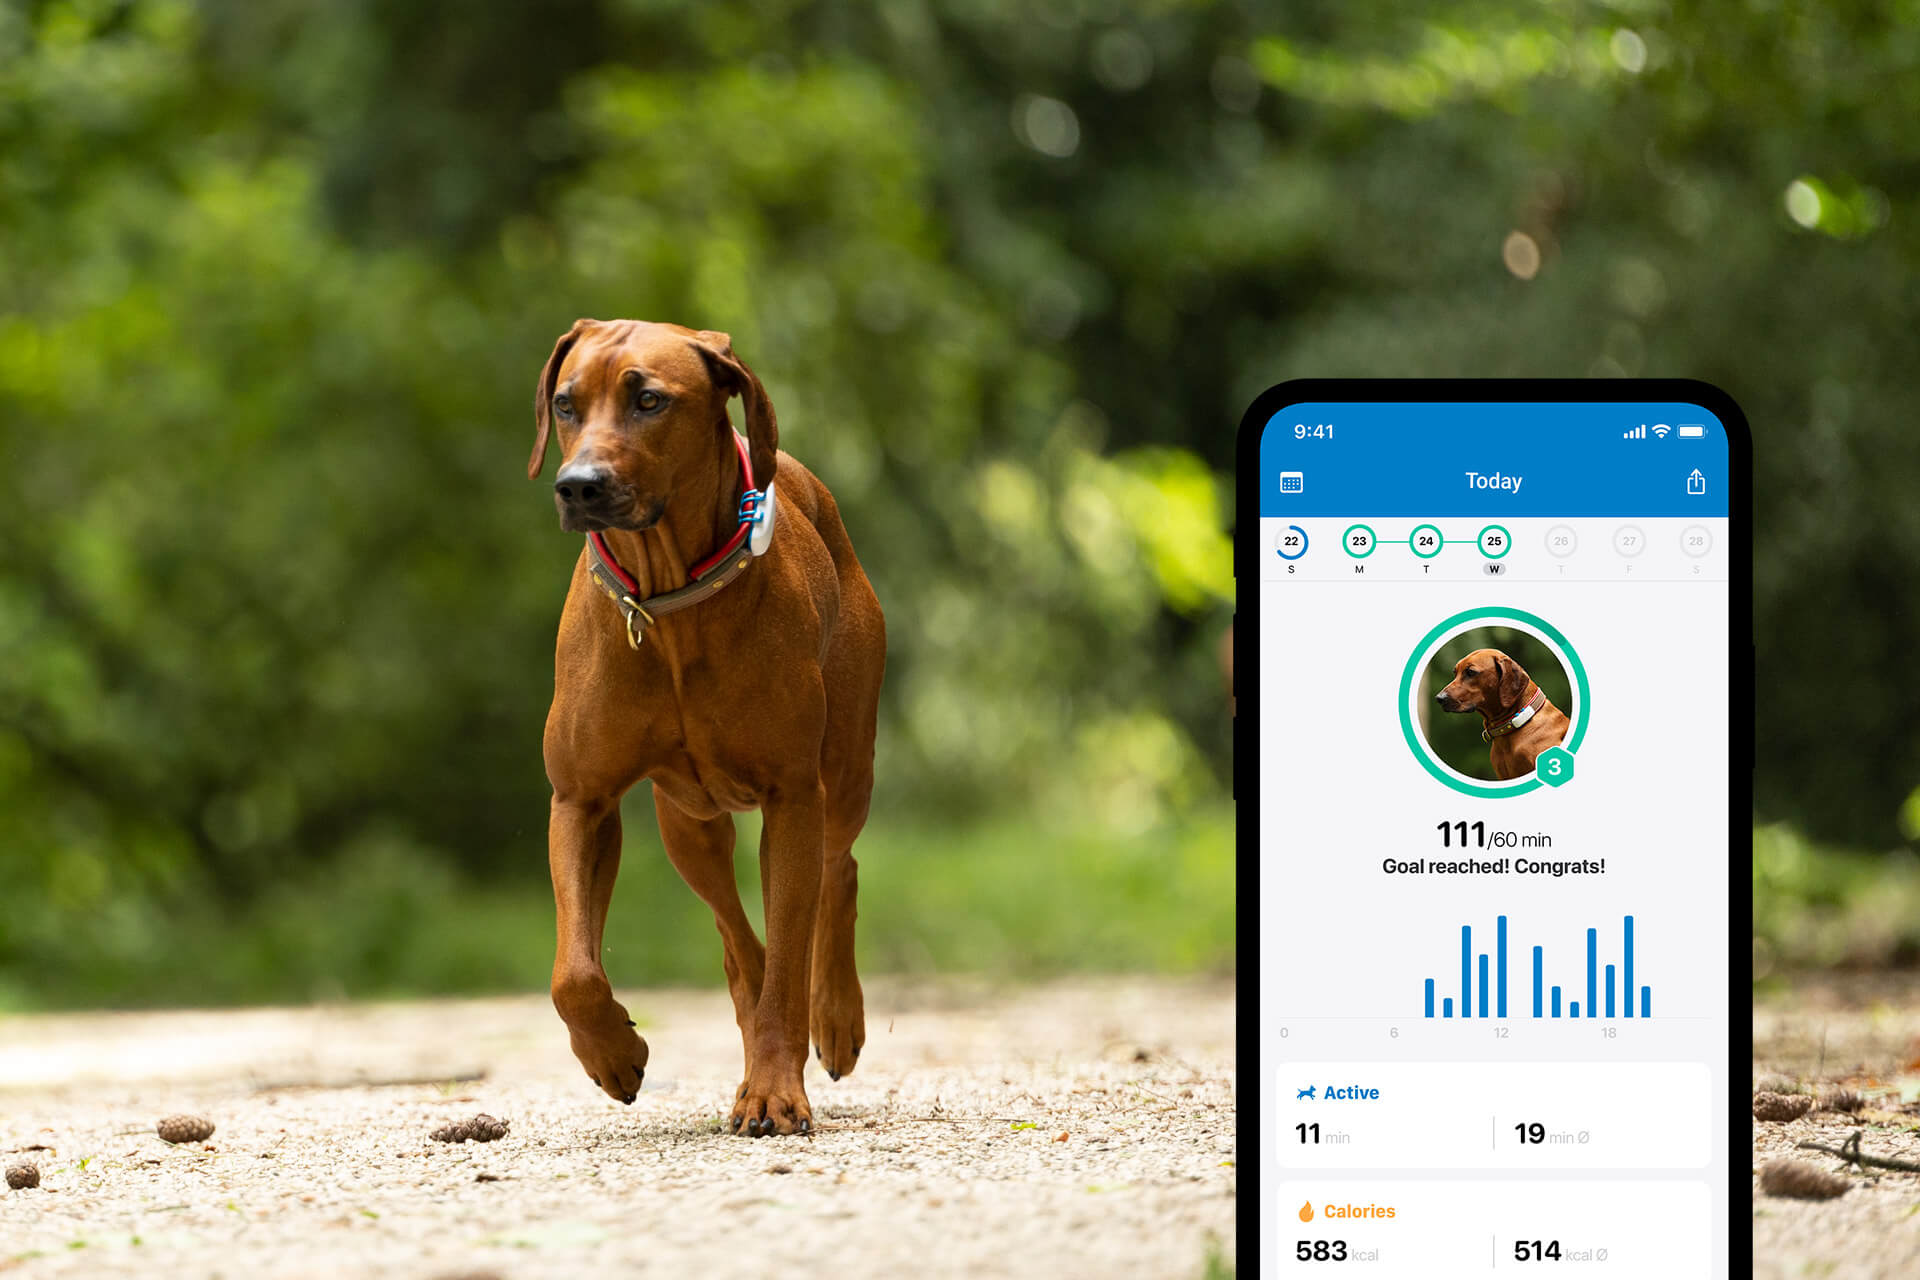 Brown dog walking with tractive gps app in the foreground